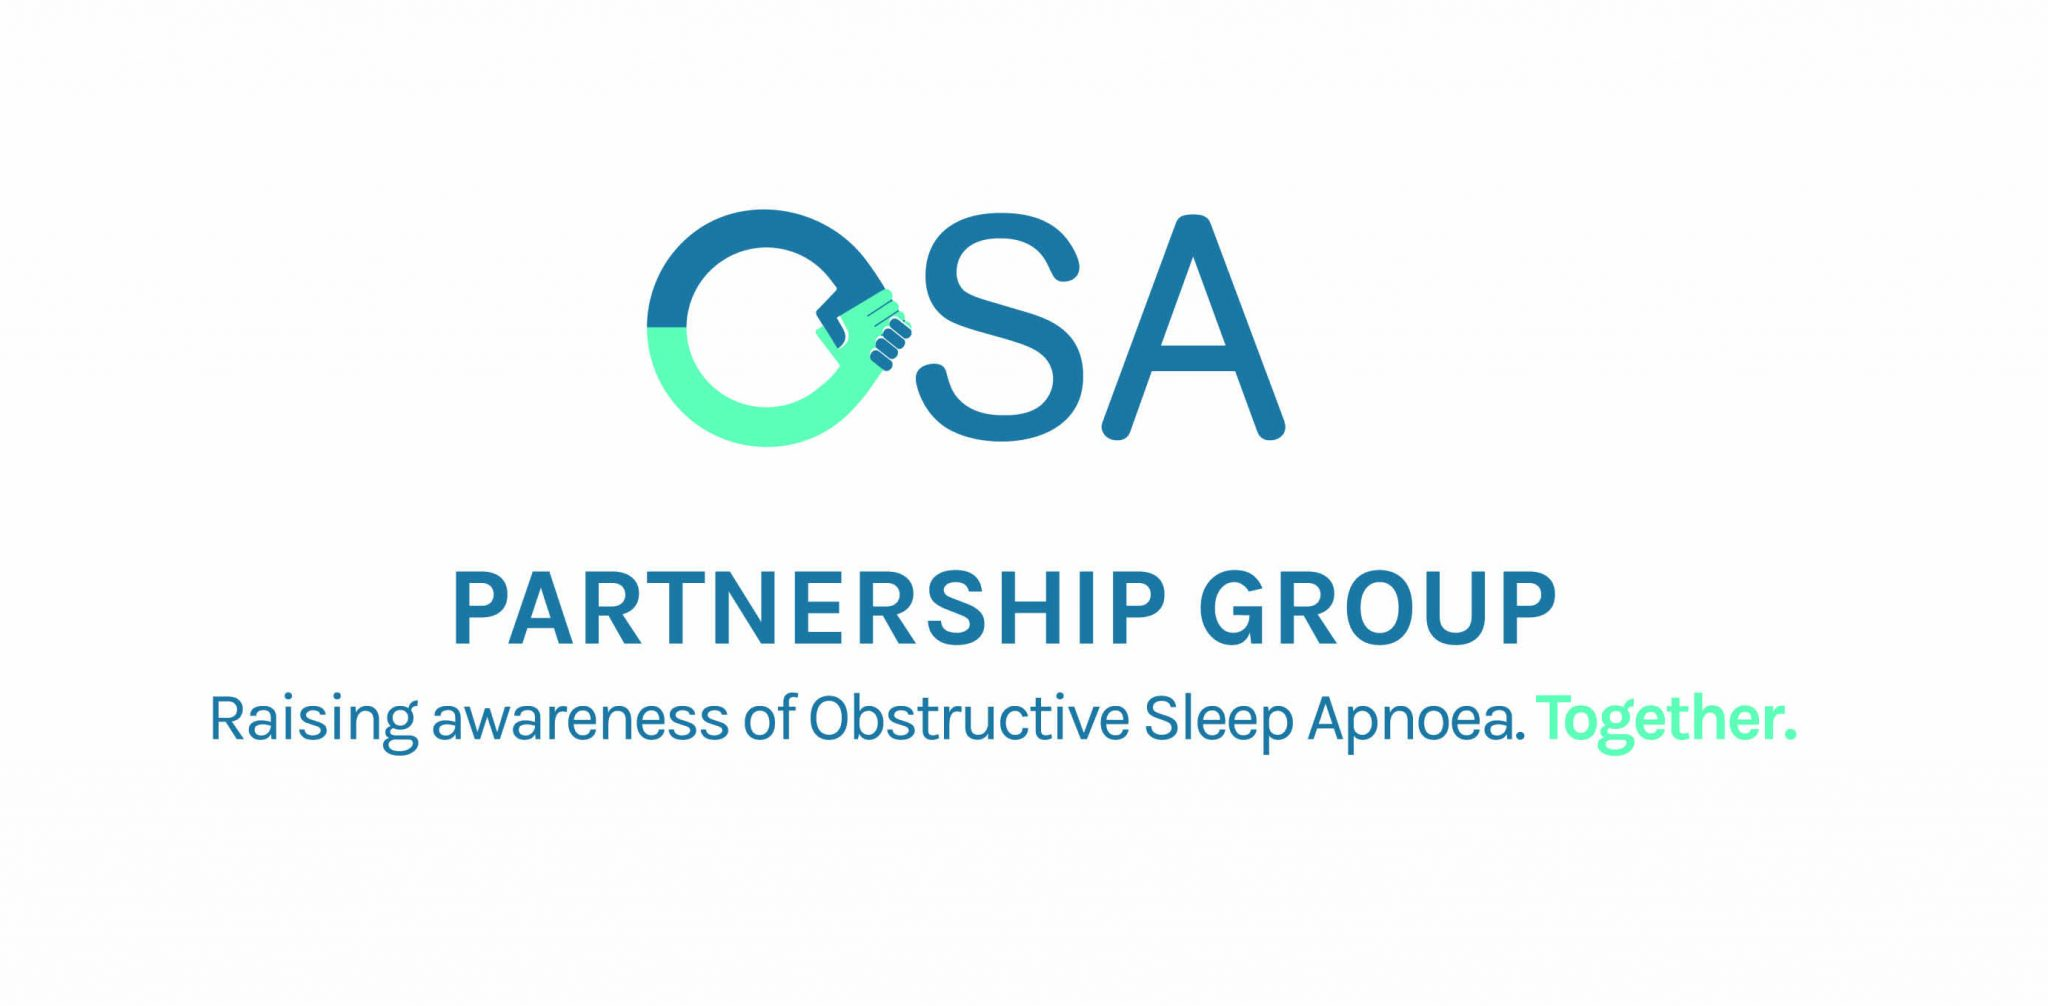 OSA Partnership Group